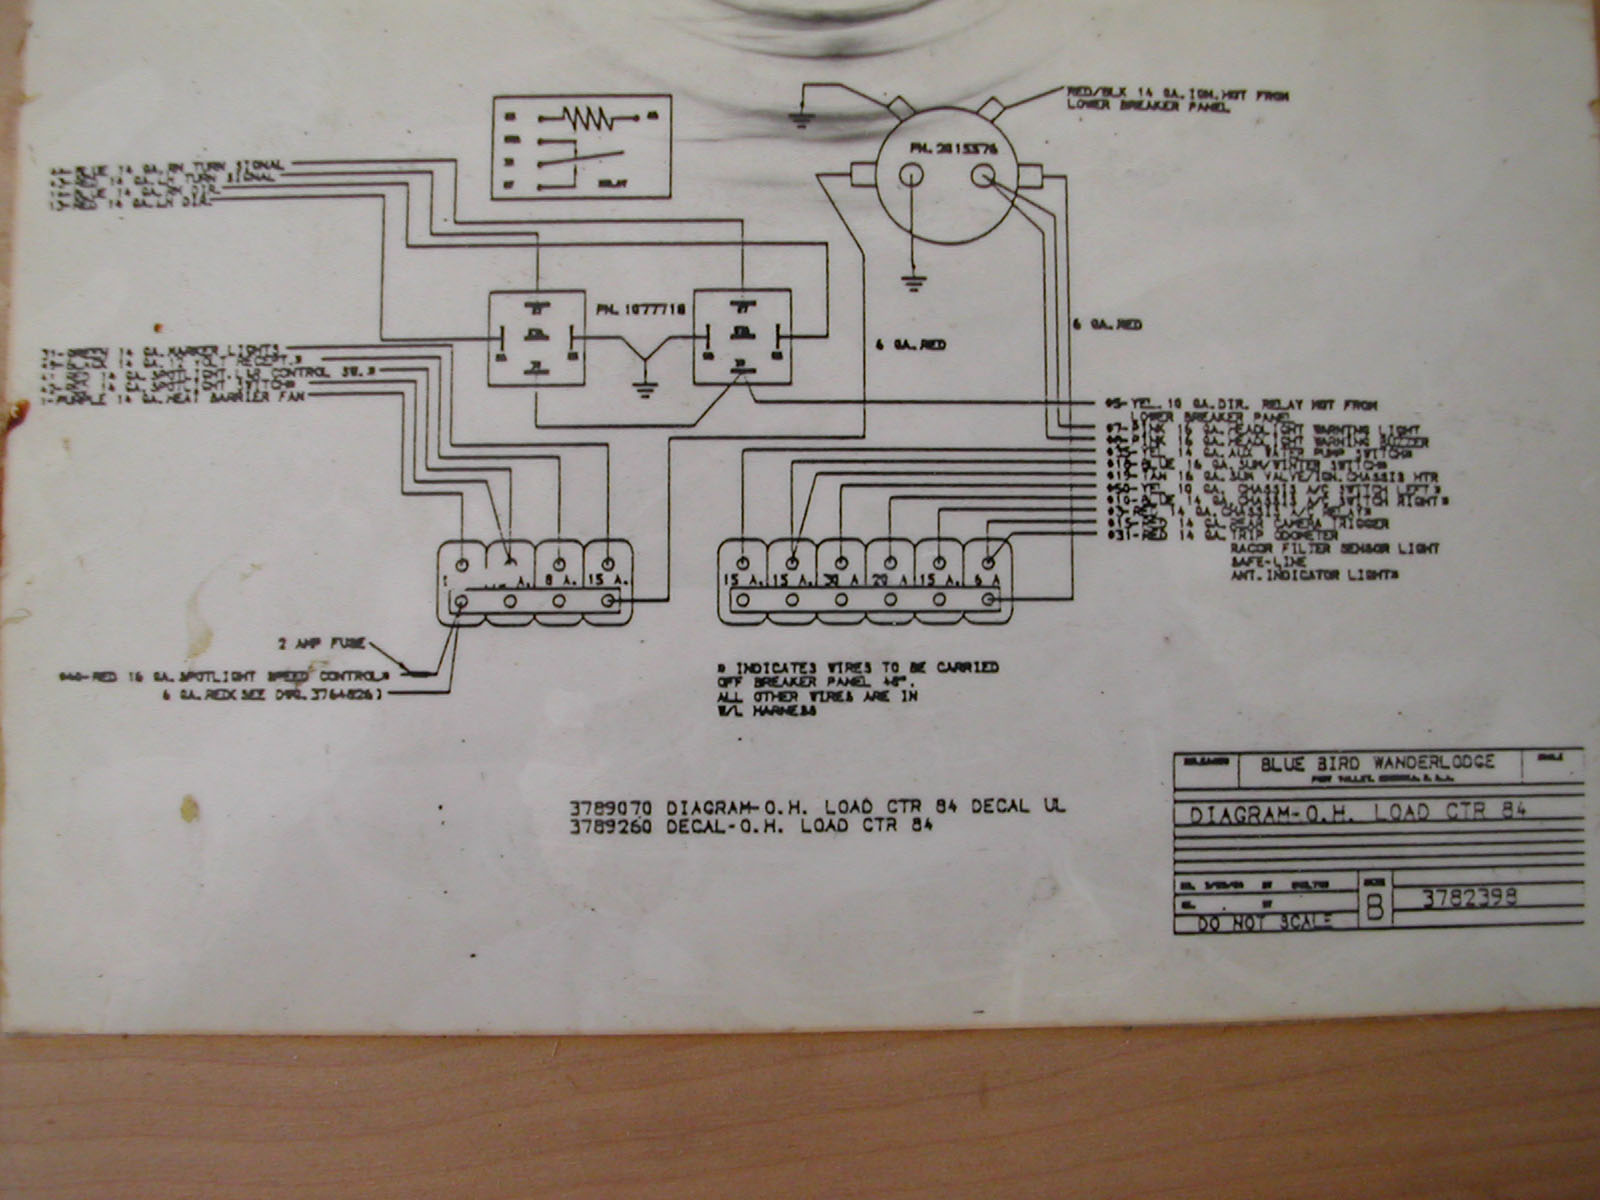 1984 gmc wiring diagrams 1984 wiring diagrams 1984%20overhead%20load%20center gmc wiring diagrams